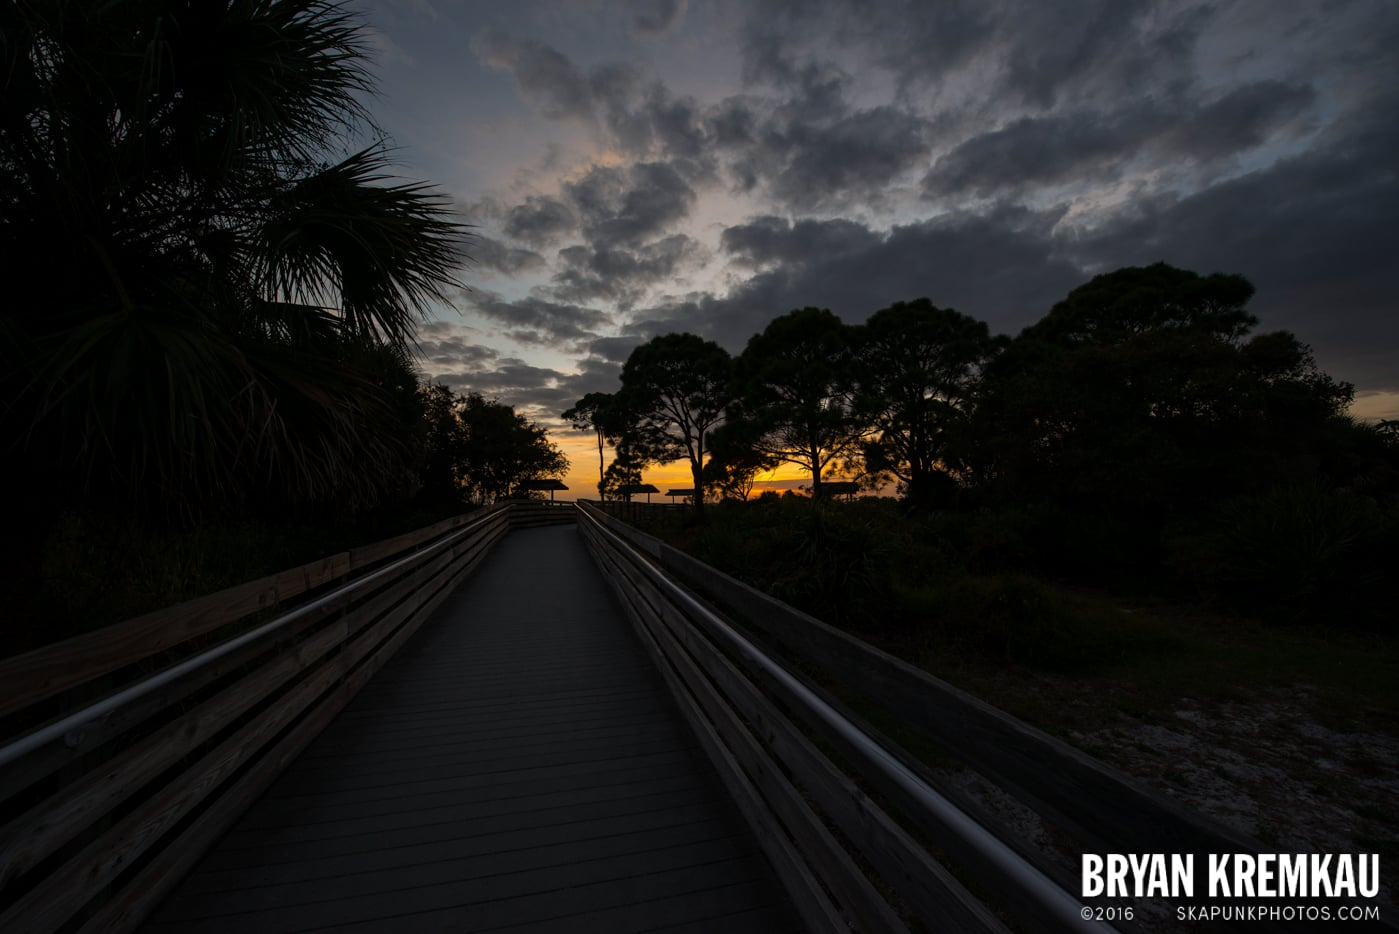 Sunsets, Astrophotography & Birds @ Venice, Florida - 10.25.14 - 11.5.14 (64)